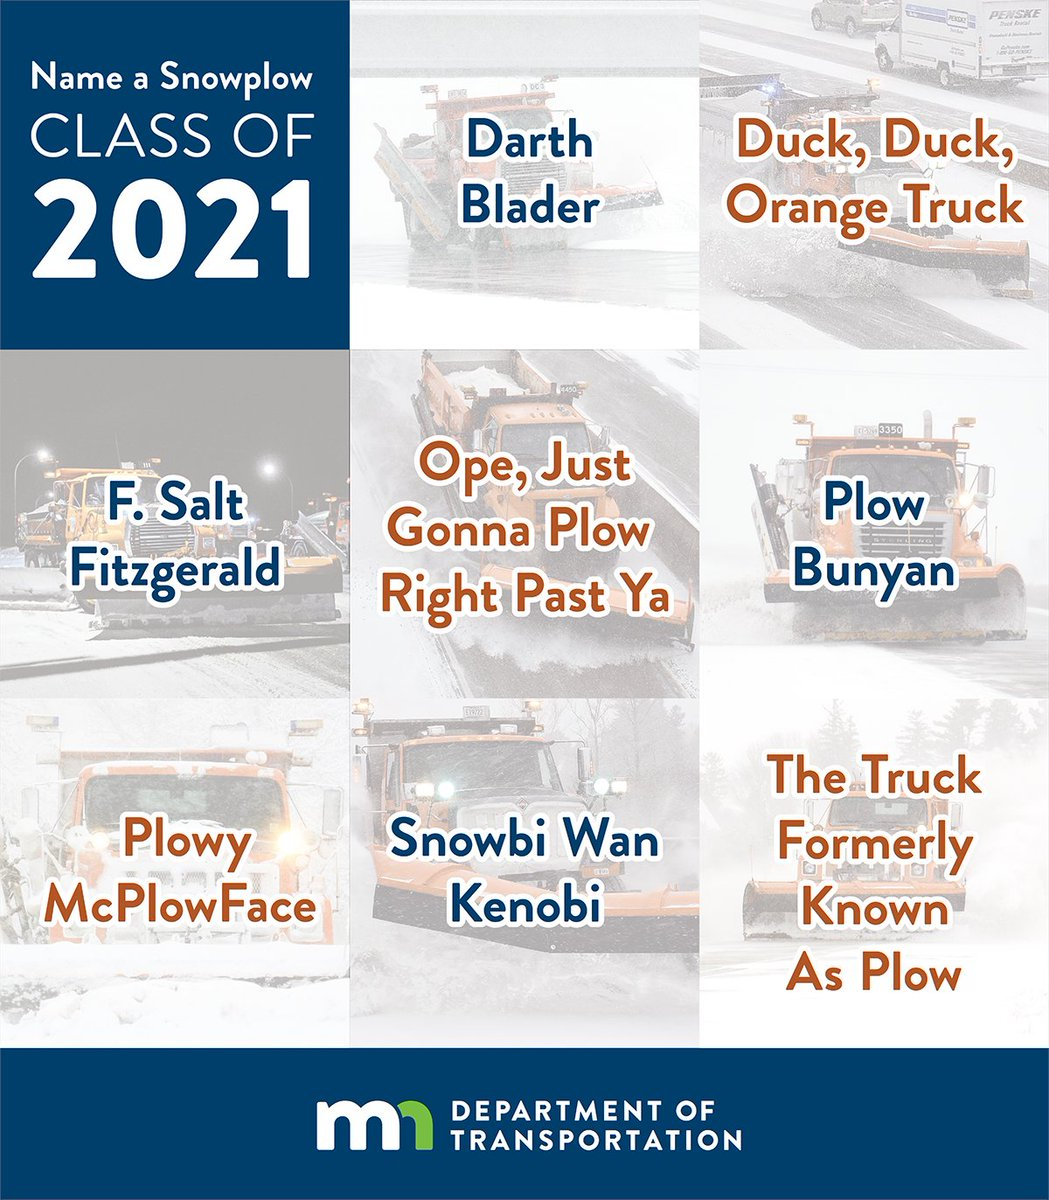 The votes are in: After more than 122,000 votes cast, we're excited to announce the winners of our Name a Snowplow contest! These eight names will soon be on snowplows across the state. Learn more: